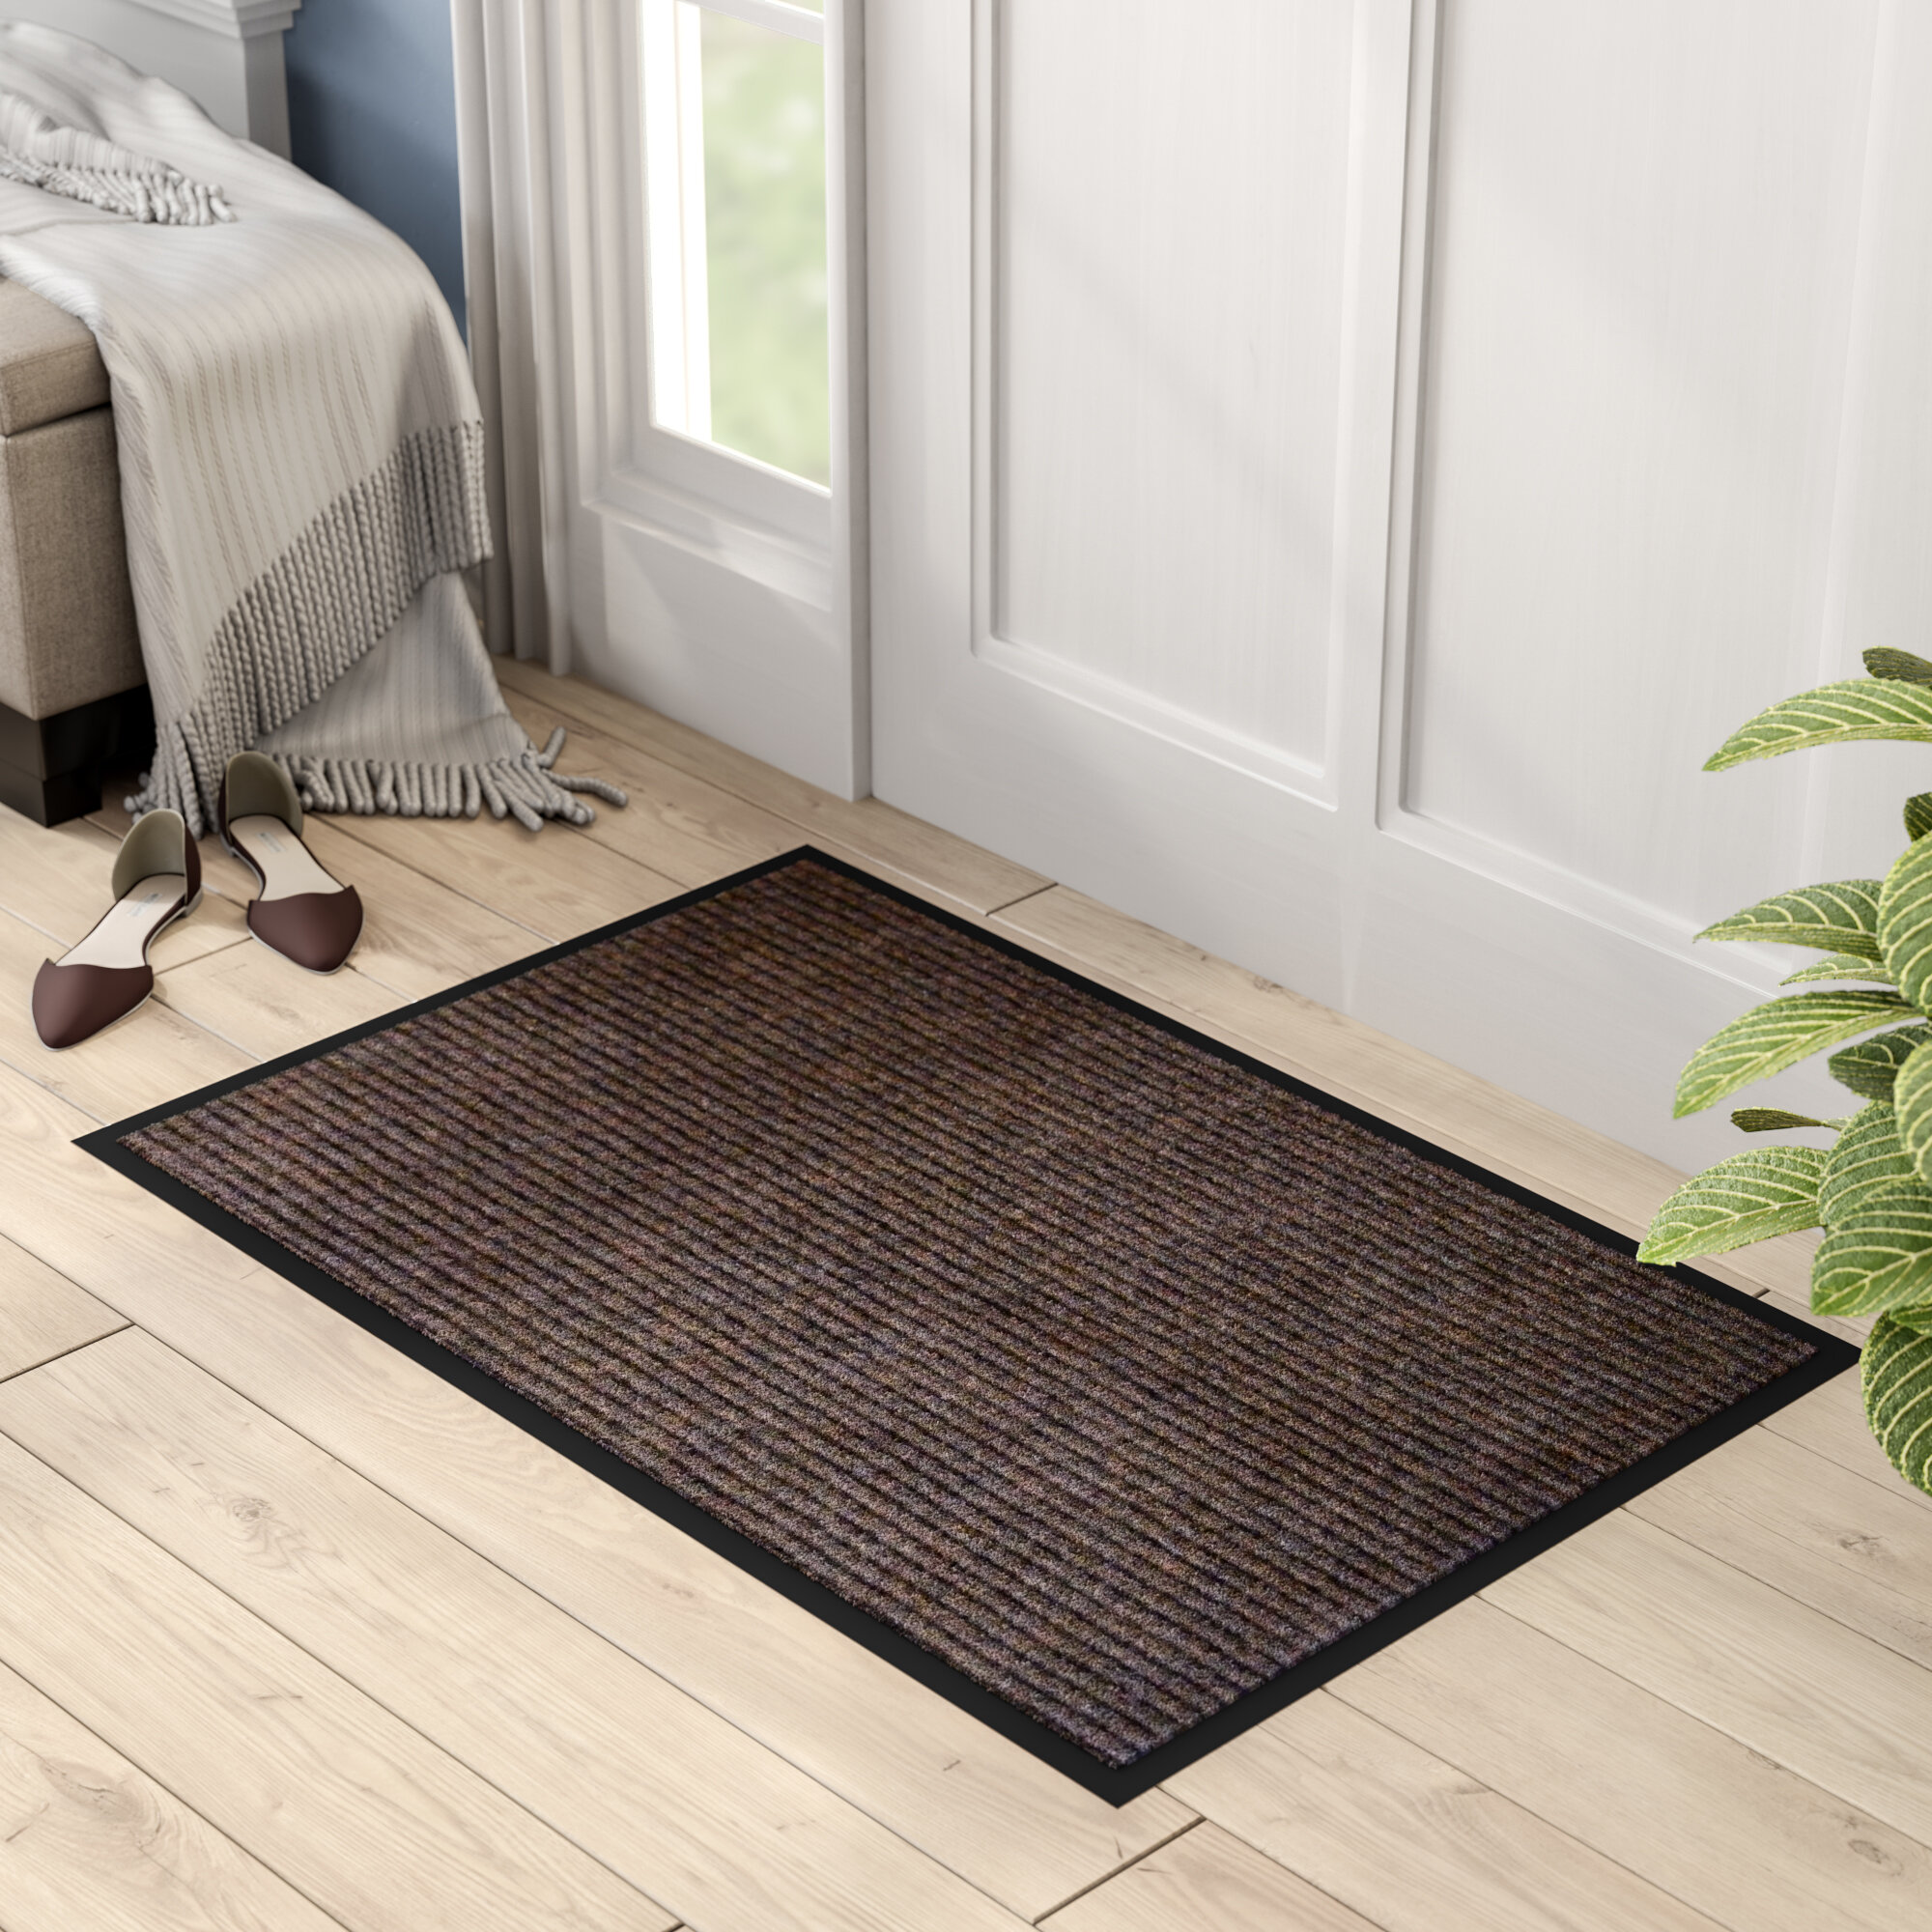 Etonnant Red Barrel Studio Hastings Rectangular Indoor Ribbed Entrance Door Mat U0026  Reviews | Wayfair